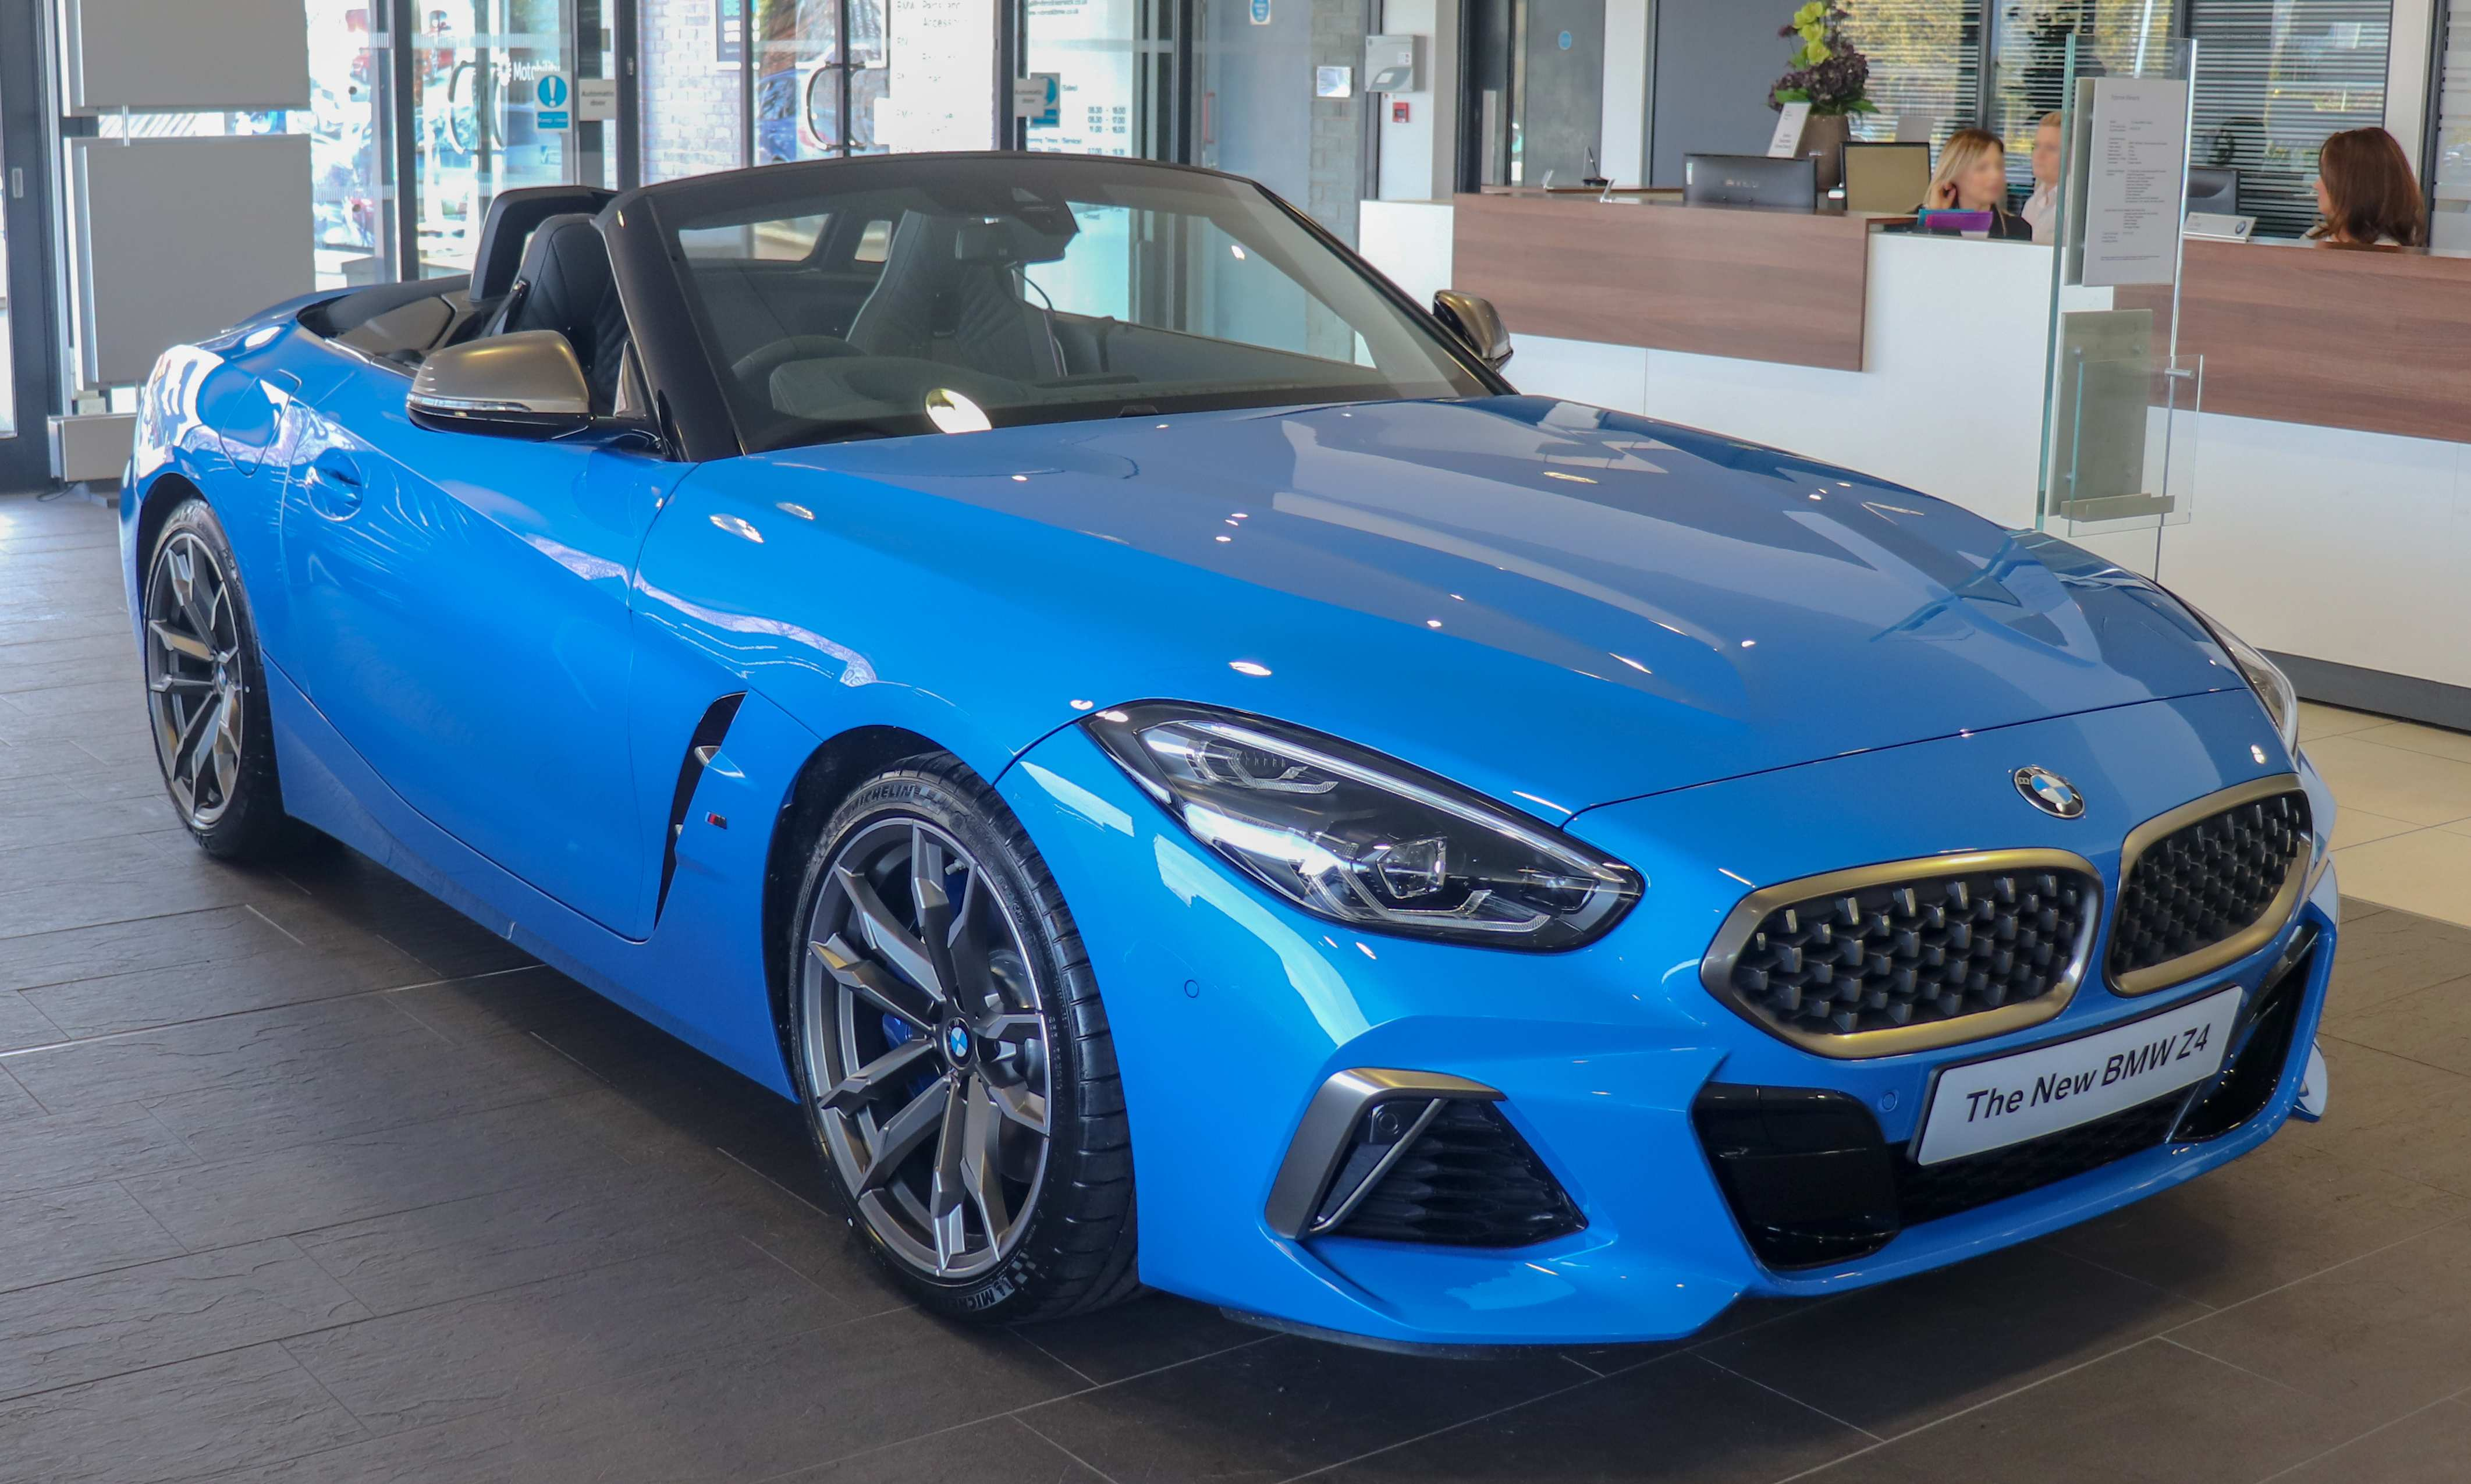 65 New The Bmw 2019 Z4 Dimensions Specs And Review Price by The Bmw 2019 Z4 Dimensions Specs And Review